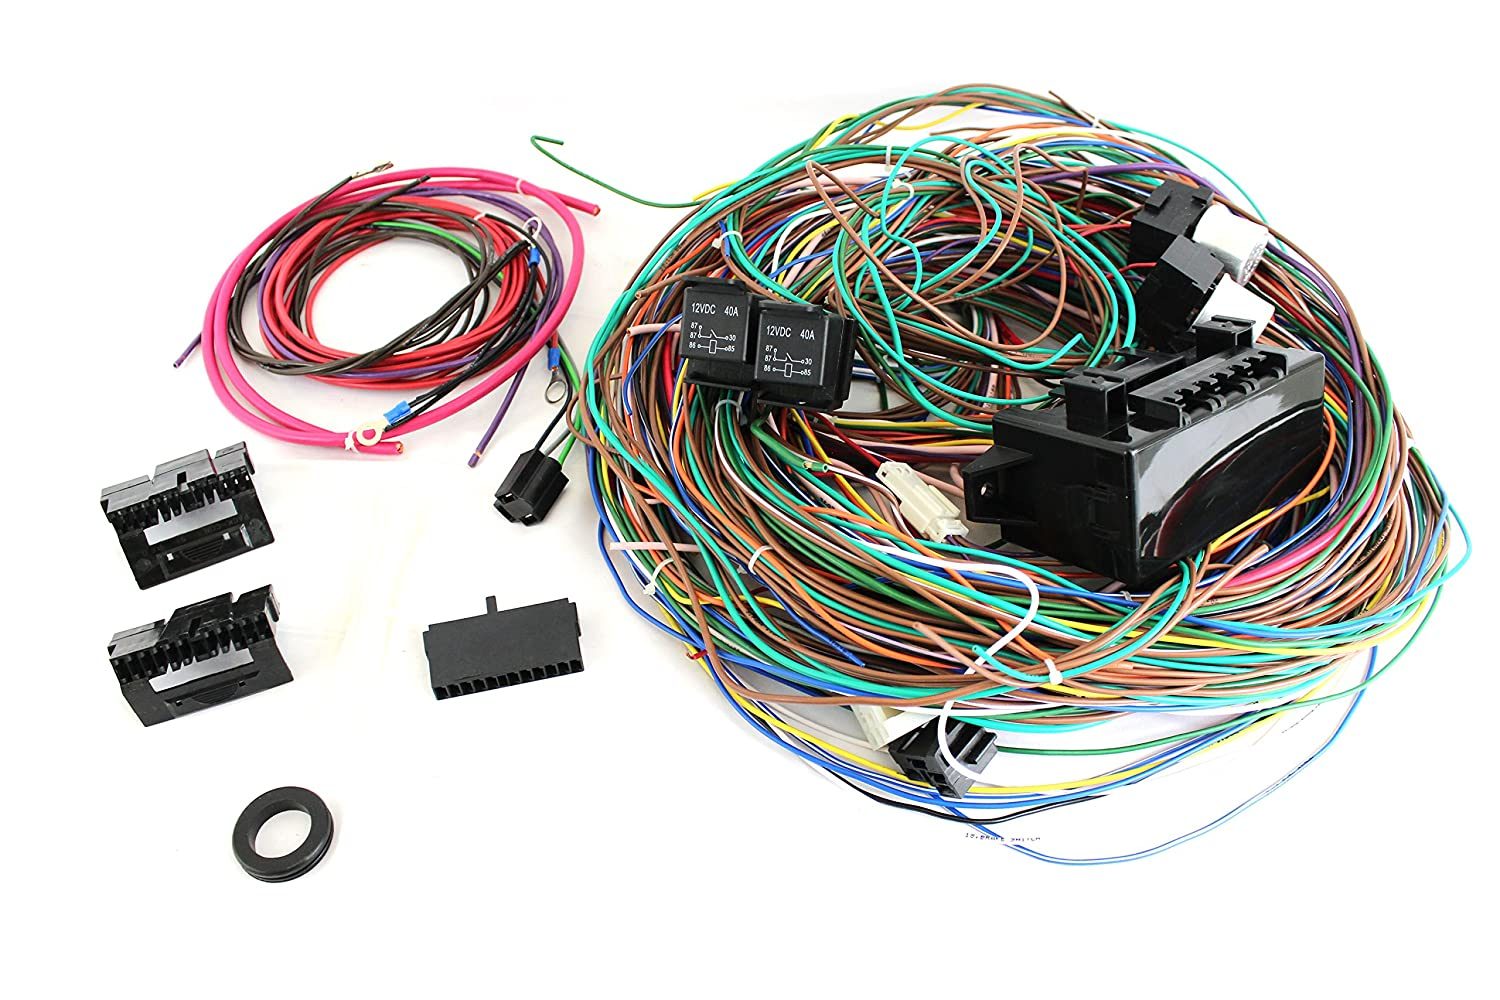 91YoamXFx2L._SL1500_ amazon com 12v 24 circuit 15 fuse street hot rat rod wiring kwik wire harness reviews at alyssarenee.co